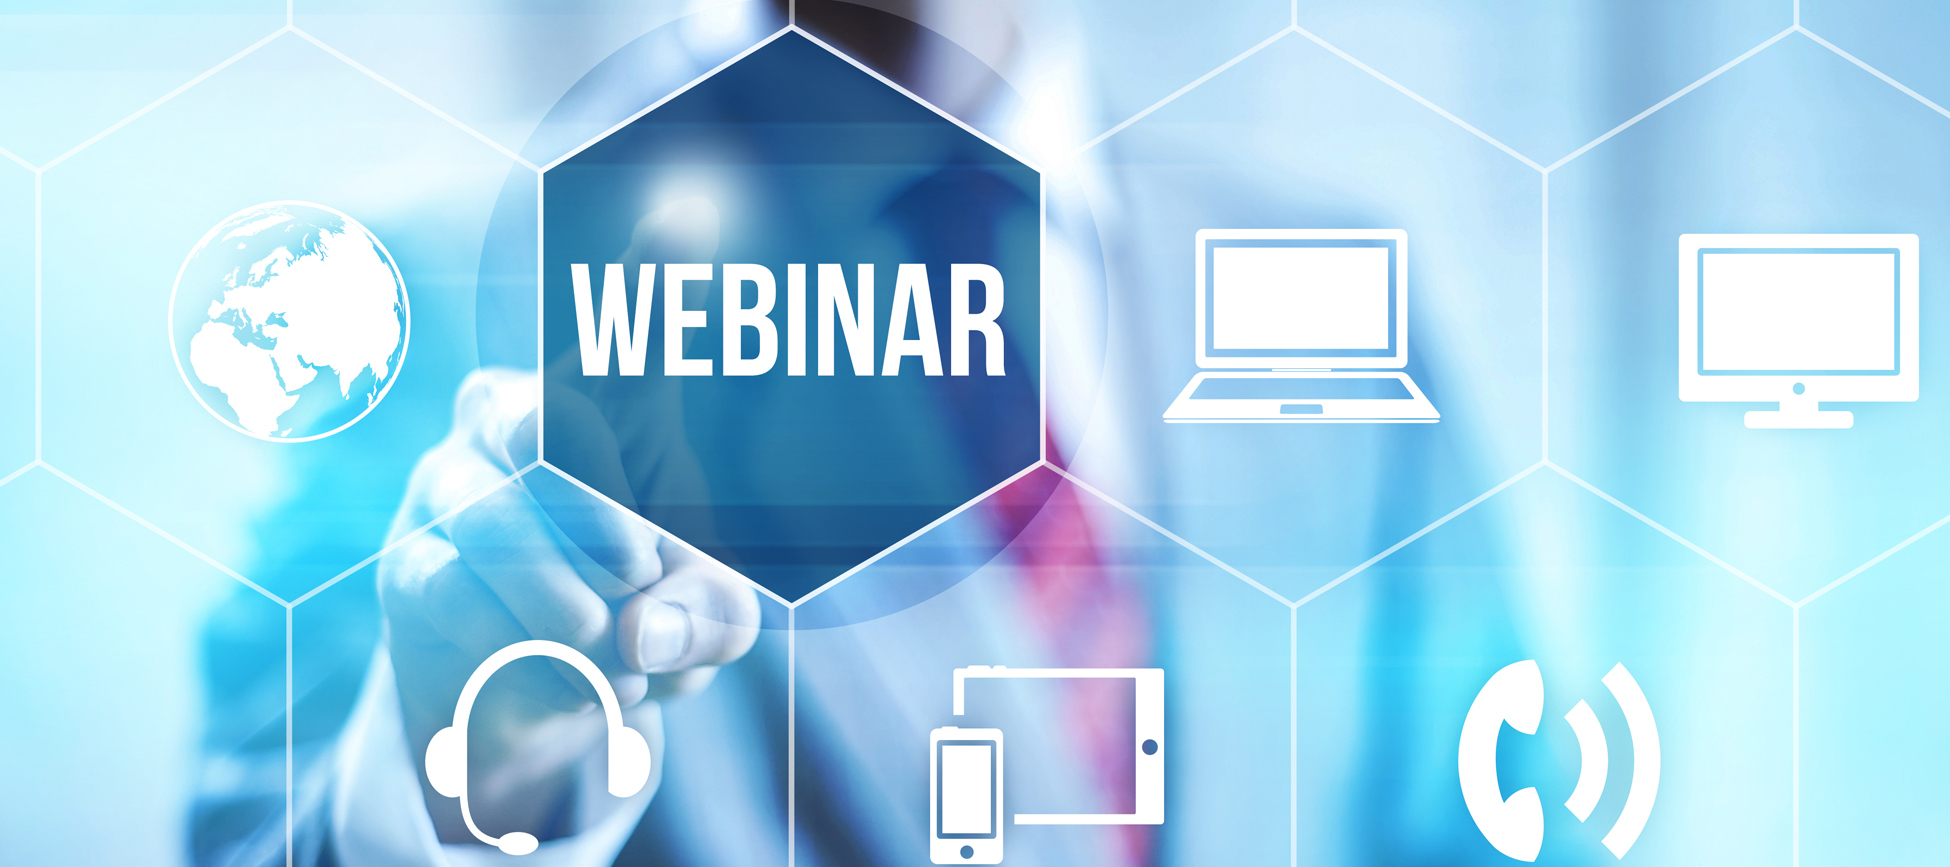 OPNAME webinar Interactieve Documenten - 12 november 2019